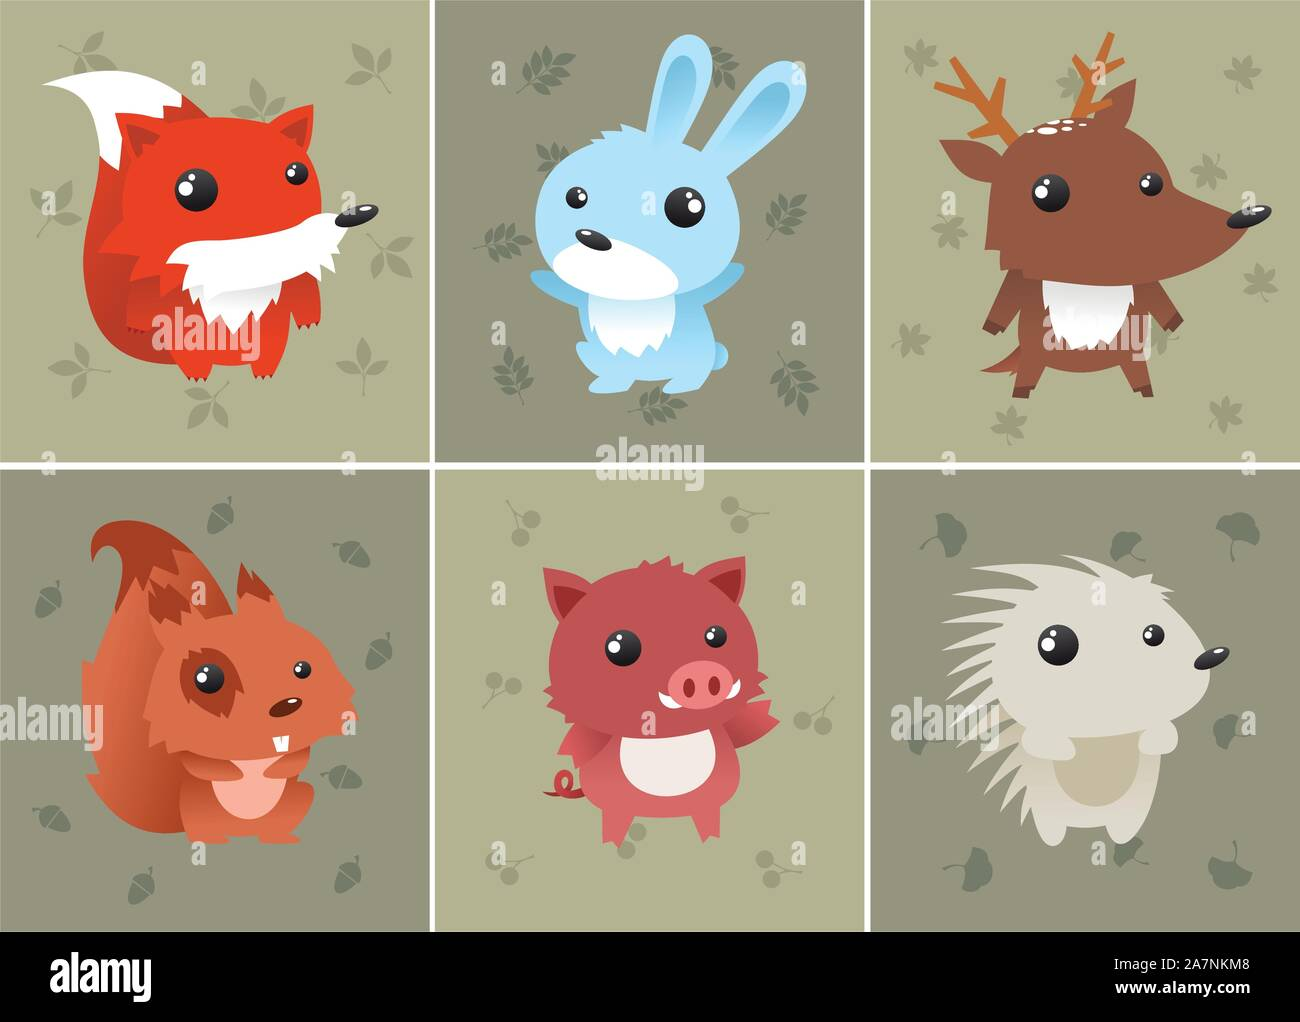 Forrest baby animals set includes: squirrel, hedgehog, fox, rabbit, deer and wild boar. Can be used as computer icons. Vector illustration. Stock Vector